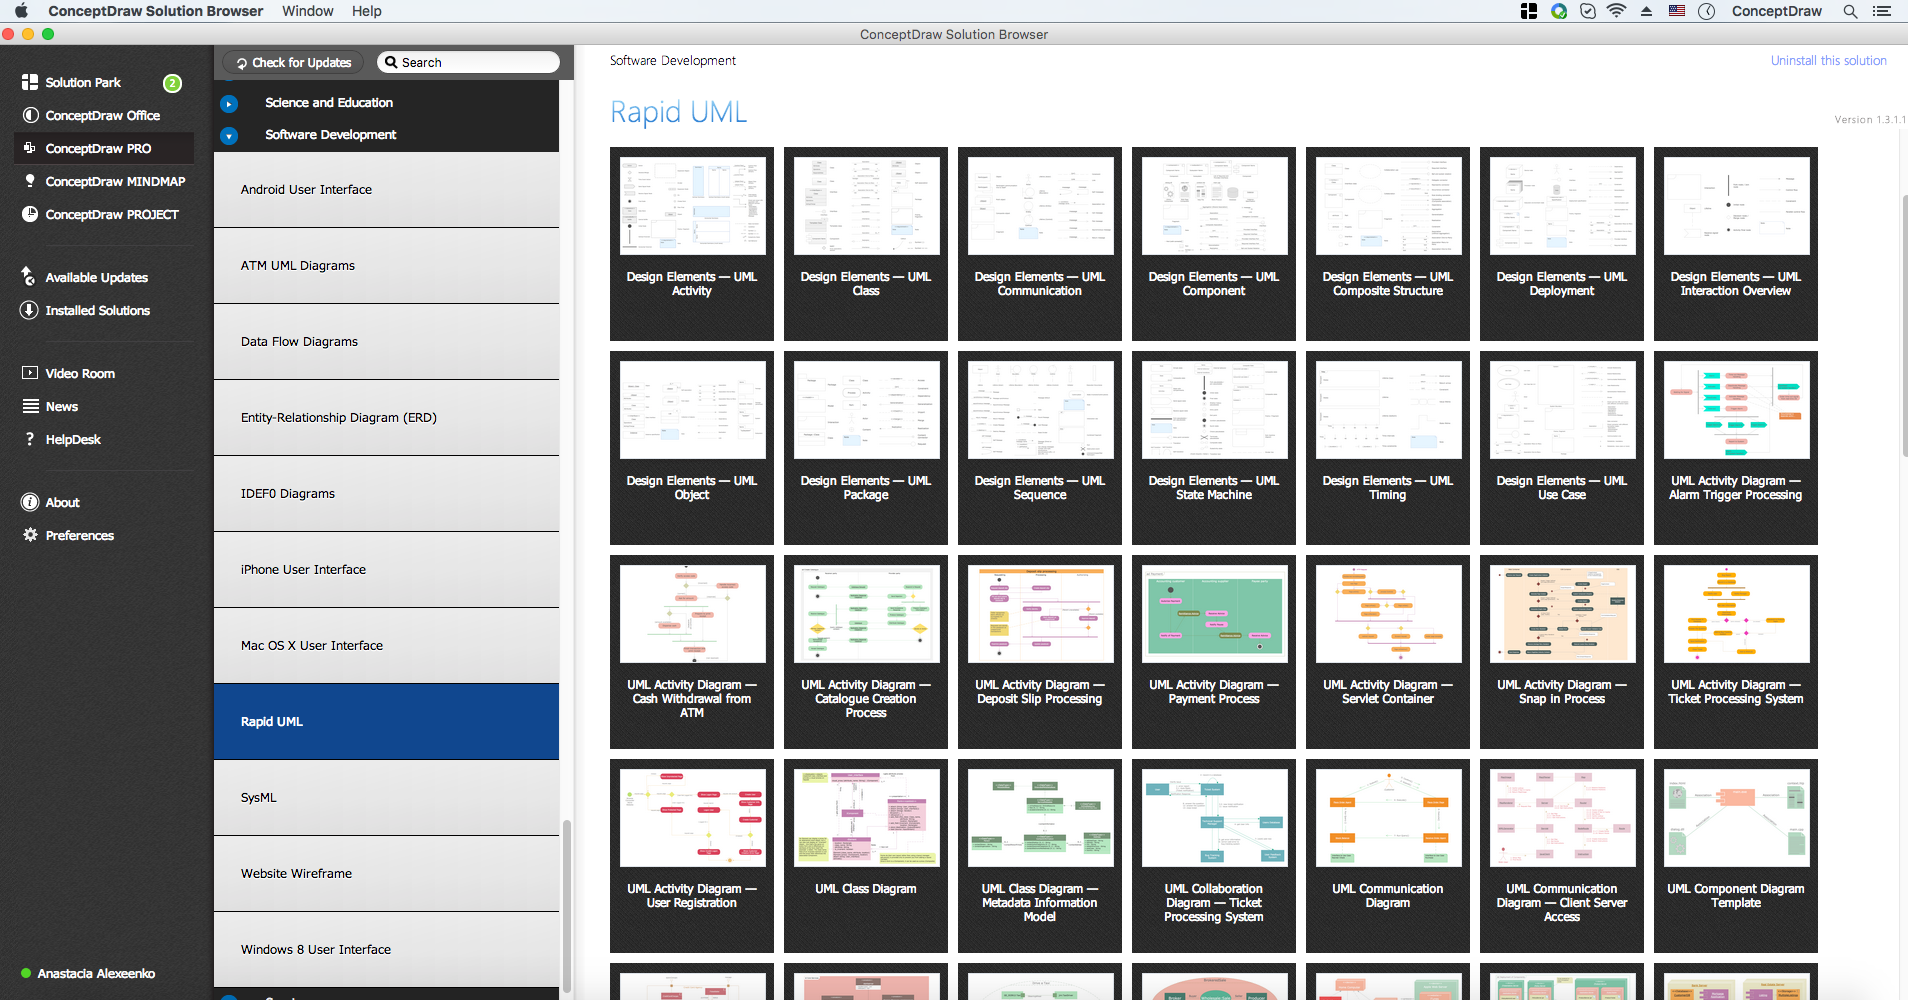 Rapid UML in ConceptDraw STORE